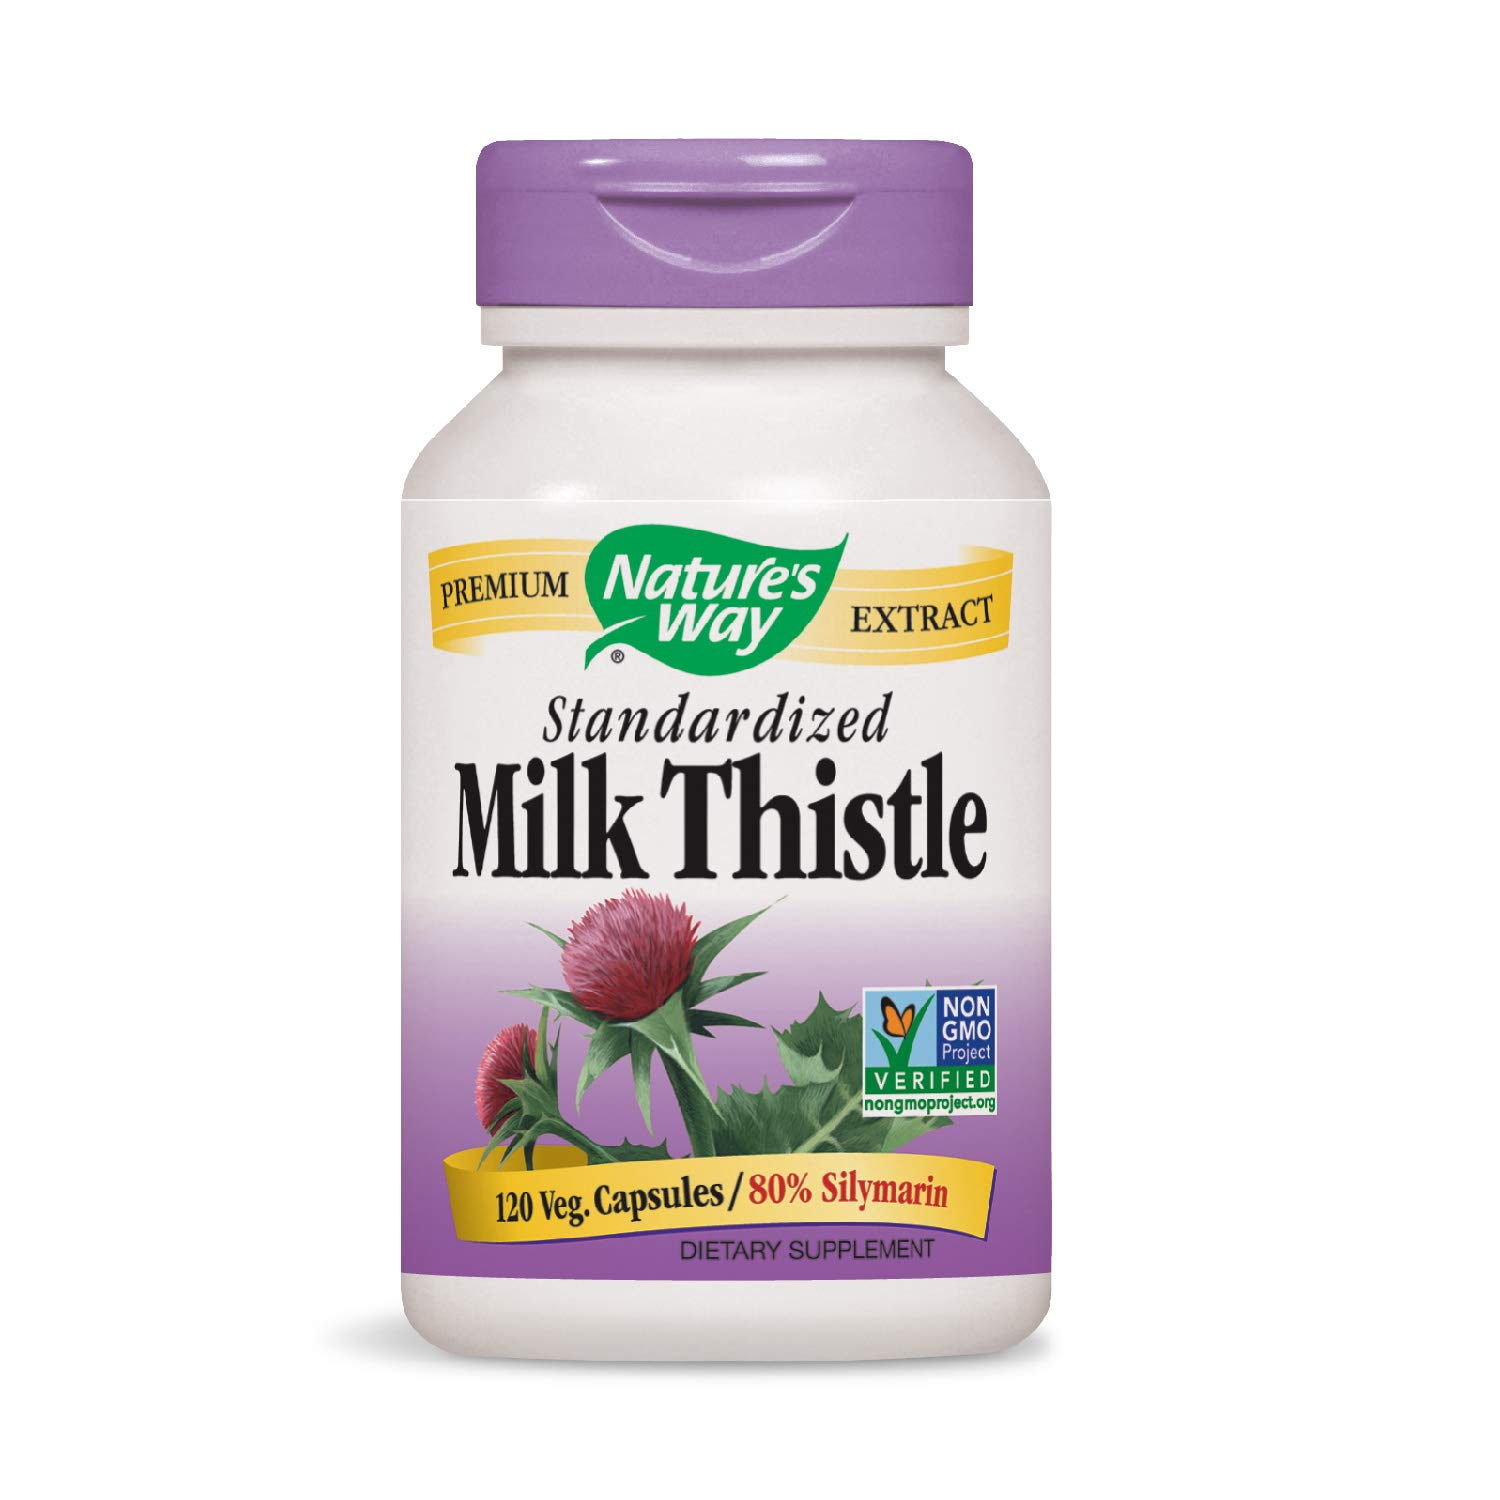 Nature s Way Standardized Milk Thistle 80 Silymarin per serving TRU-ID Certified Non-GMO Project Verified Vegetarian 120 Vegetarian Capsules.